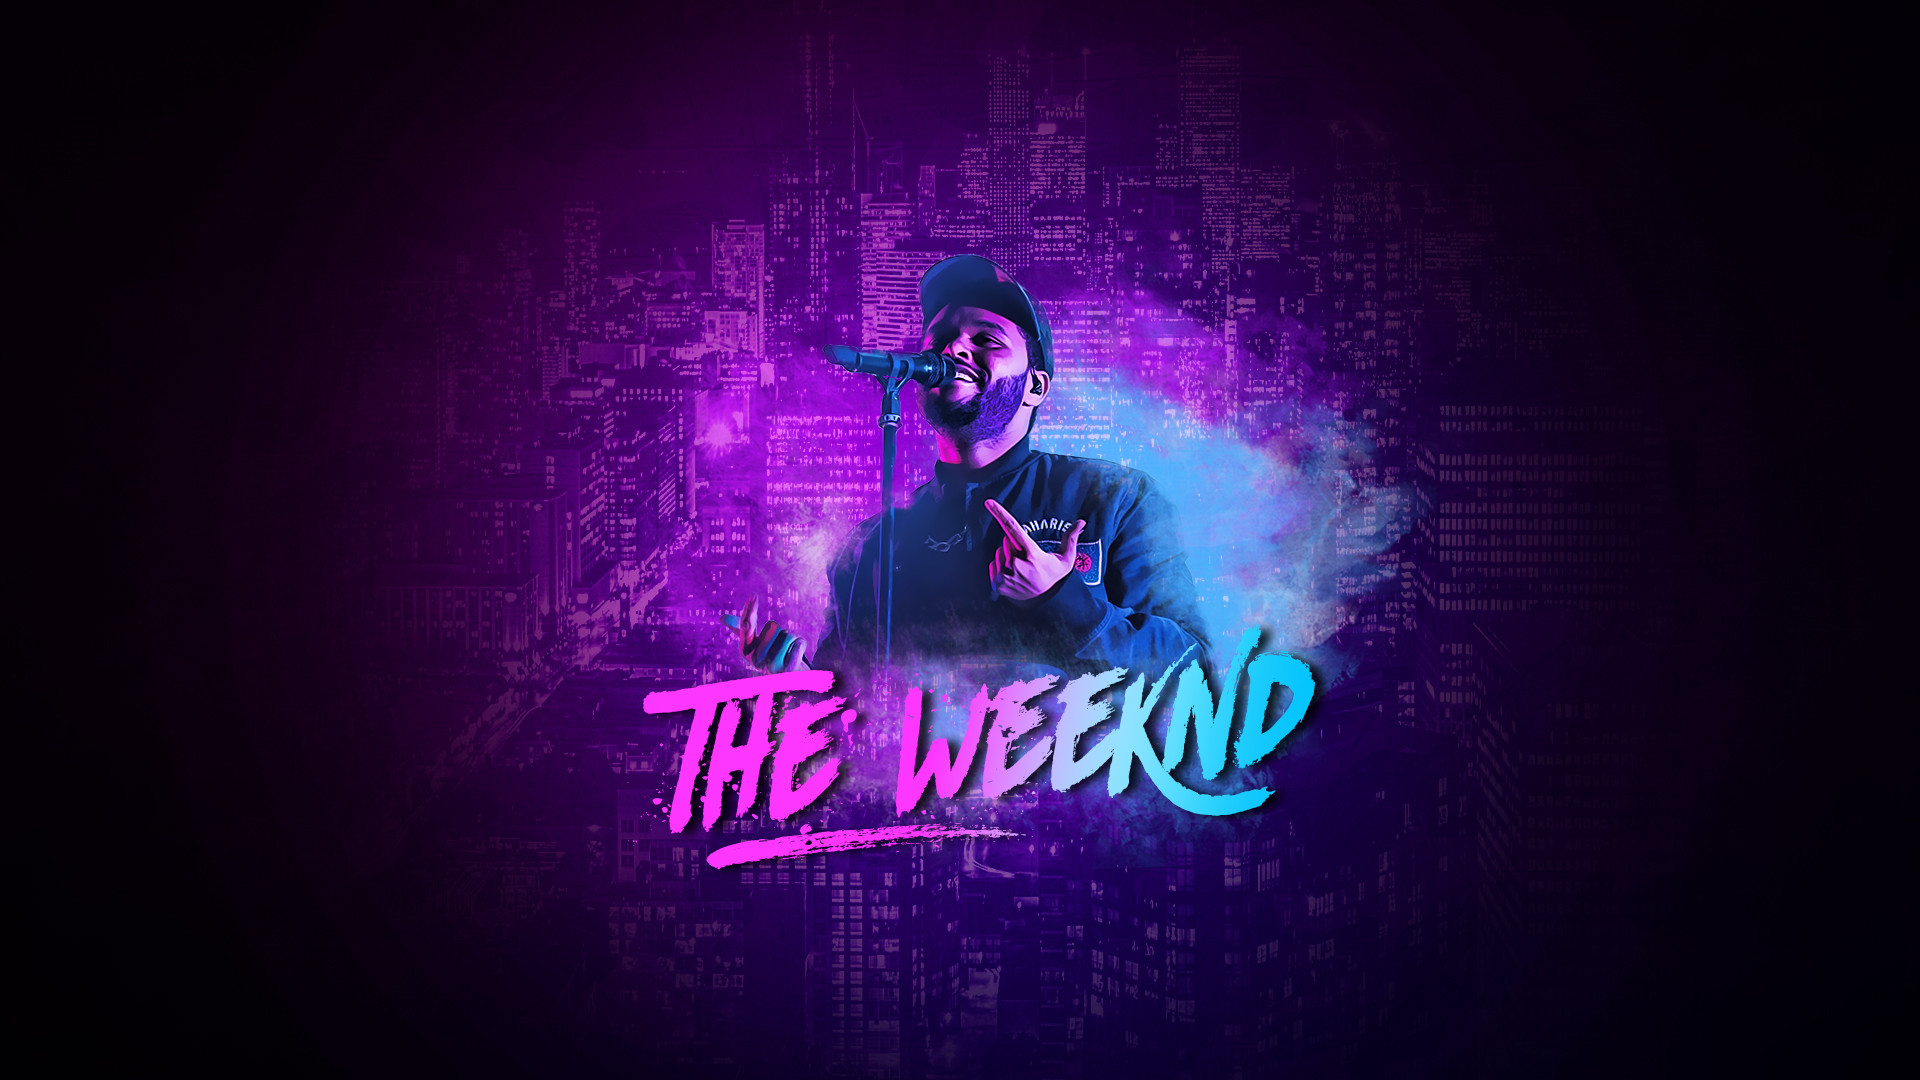 1920x1080 The Weeknd wallpaper by Vucko024 The Weeknd wallpaper by Vucko024